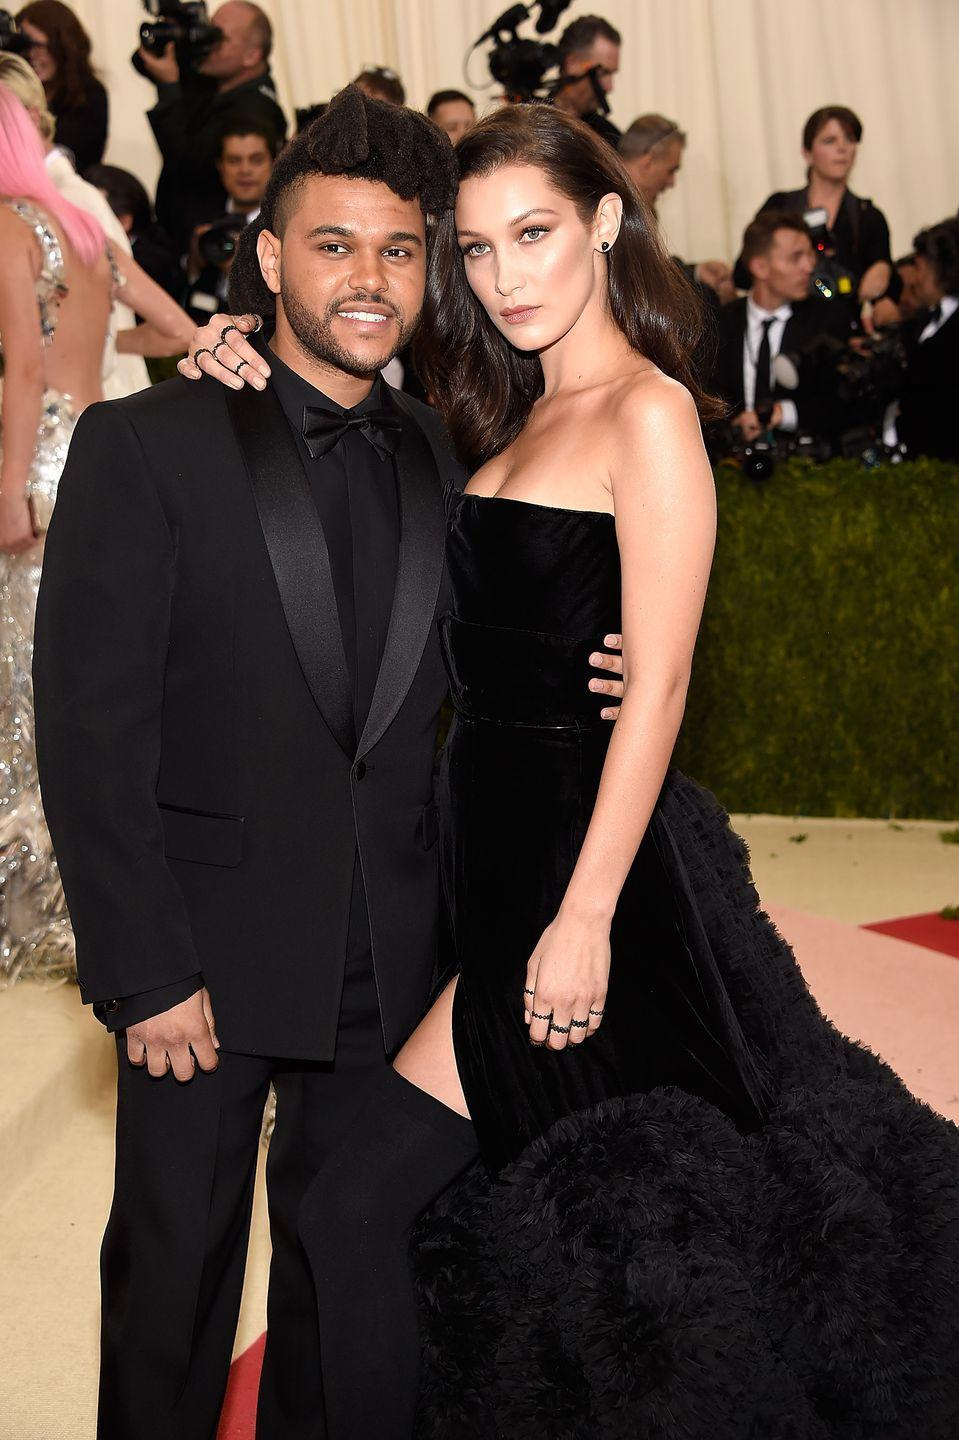 "<p>The love triangle between Selena Gomez, Bella Hadid, and The Weeknd has had no shortage of drama. Remember, Bella dated The Weeknd BEFORE Selena. So when the model and the singer got back together, Selenators were upset. But the two women have since <a href=""https://toofab.com/2019/11/18/selena-gomez-reacts-to-bella-hadid-deleting-post-she-commented-on/"" rel=""nofollow noopener"" target=""_blank"" data-ylk=""slk:sorted out their issues"" class=""link rapid-noclick-resp"">sorted out their issues</a> with one another, so here's hoping the internet can follow suit.</p>"